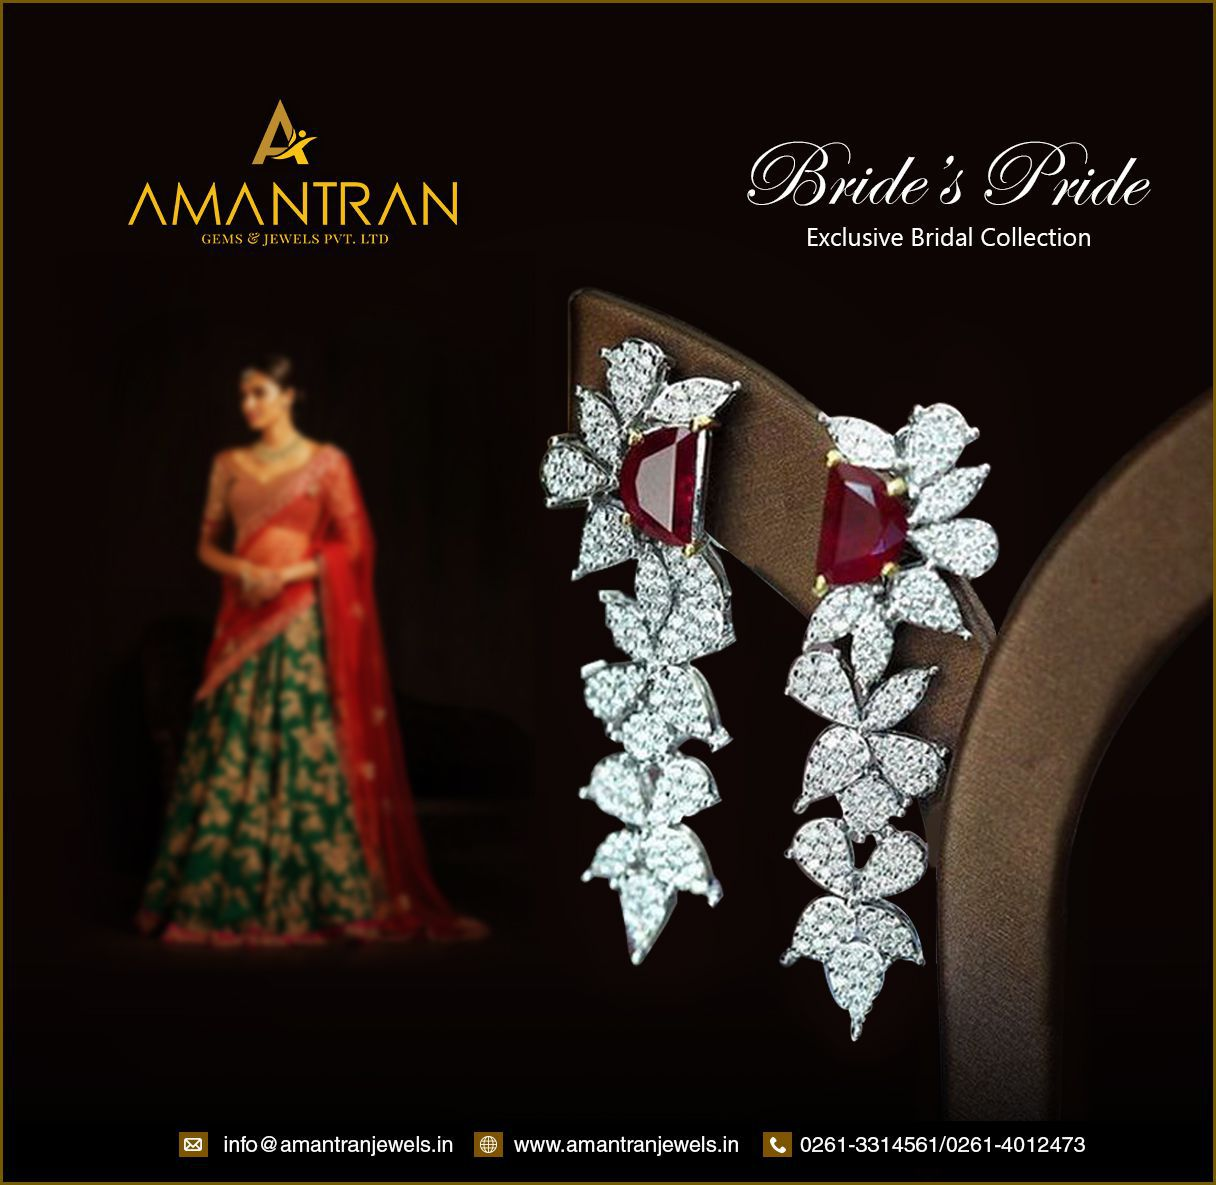 Exclusive Bridal Collection - Amantran